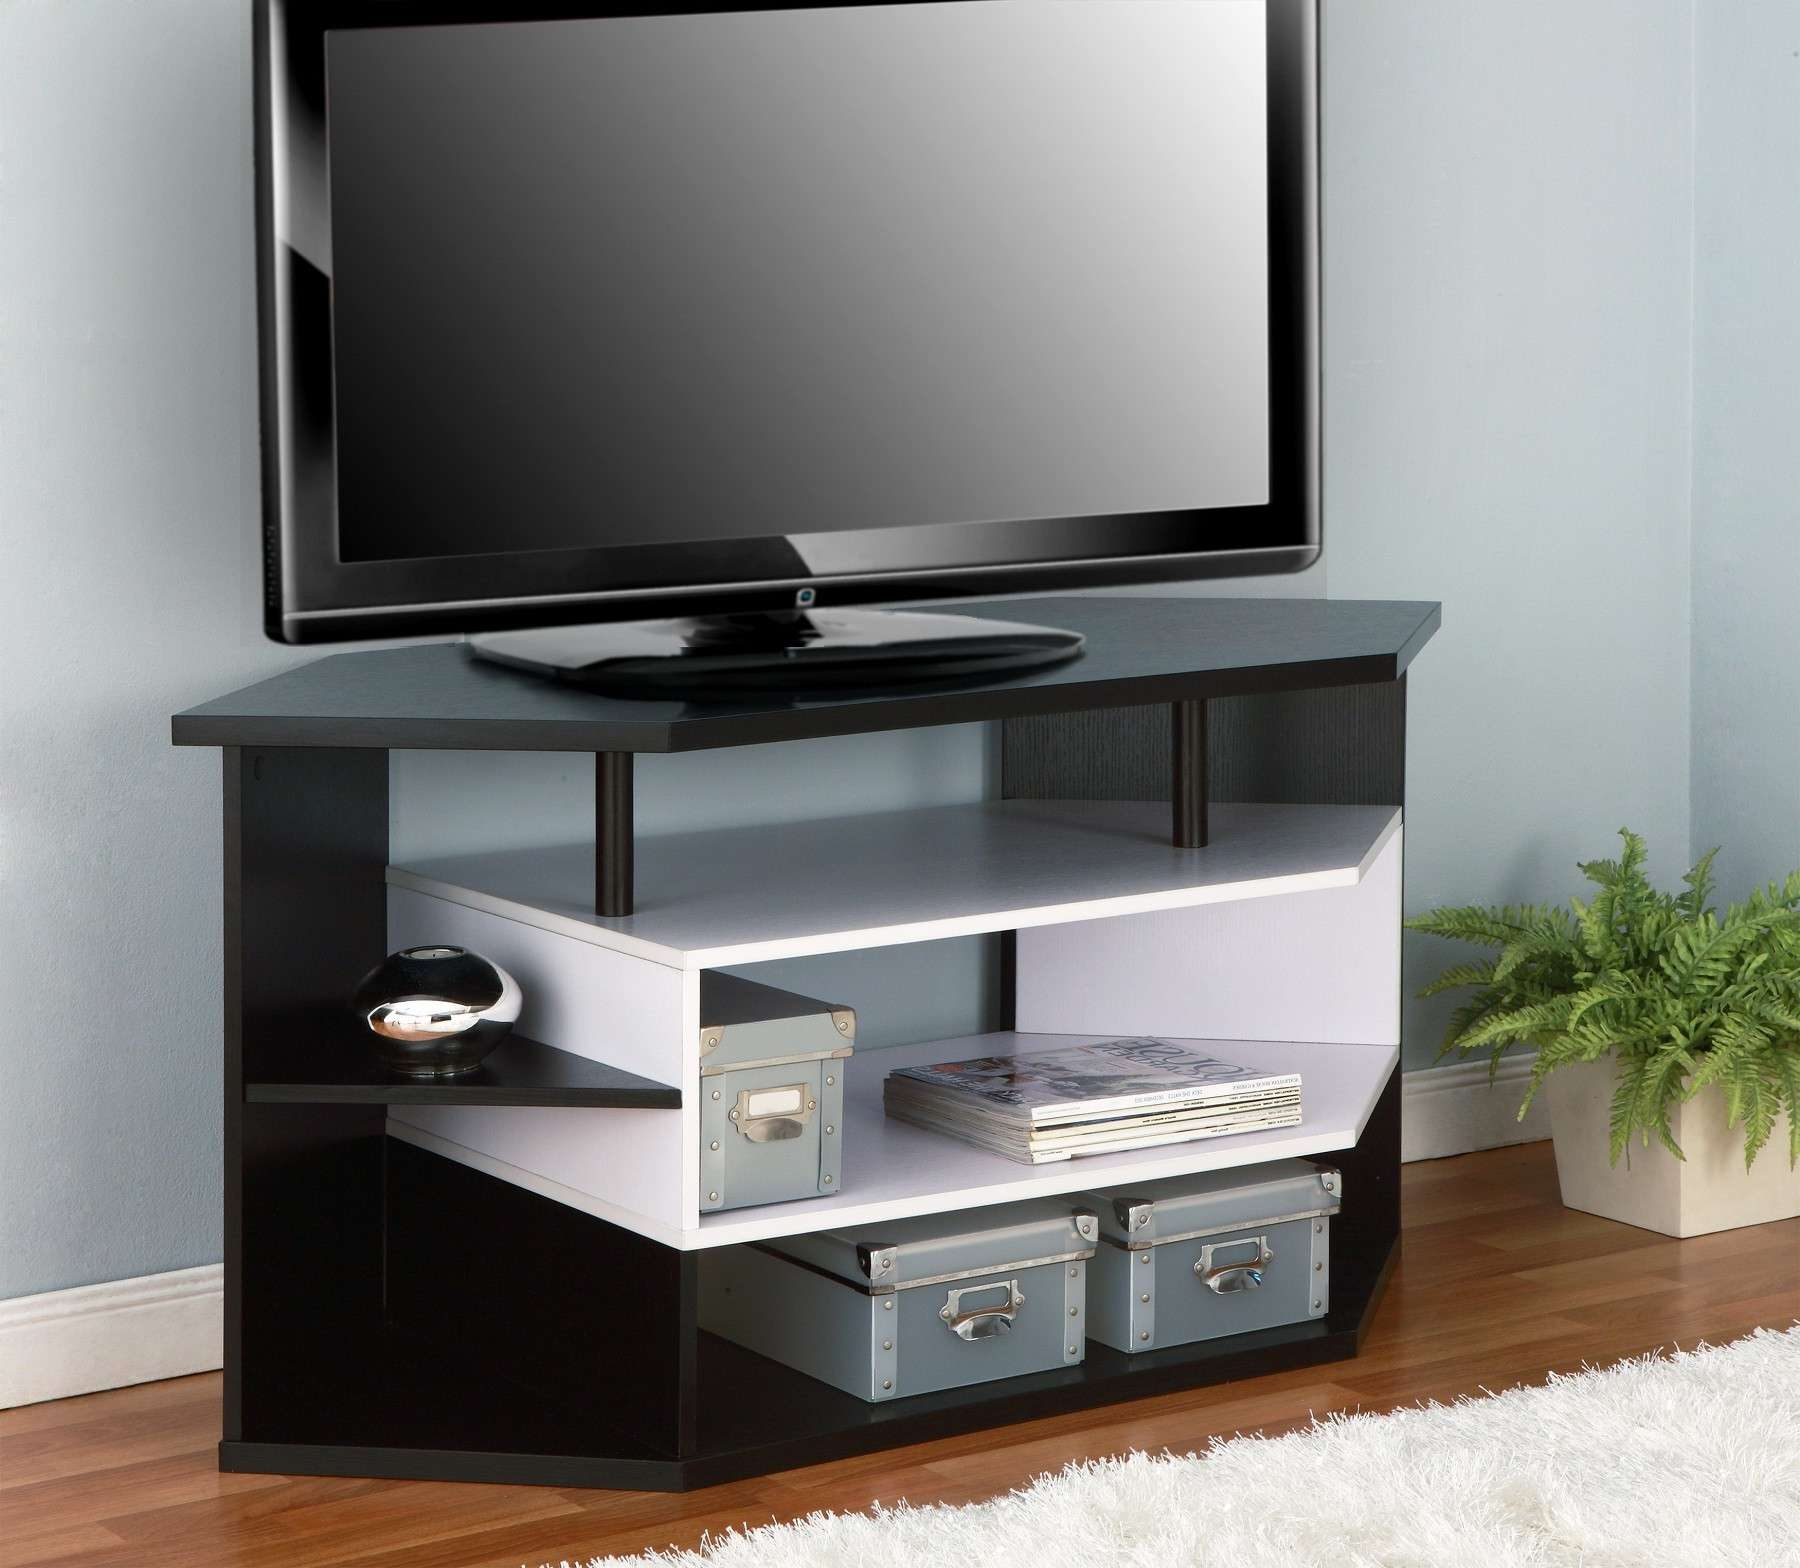 Incredible Modern Corner Tv Stand With Uk Cf White Trends Images Regarding Modern Corner Tv Stands (Gallery 19 of 20)